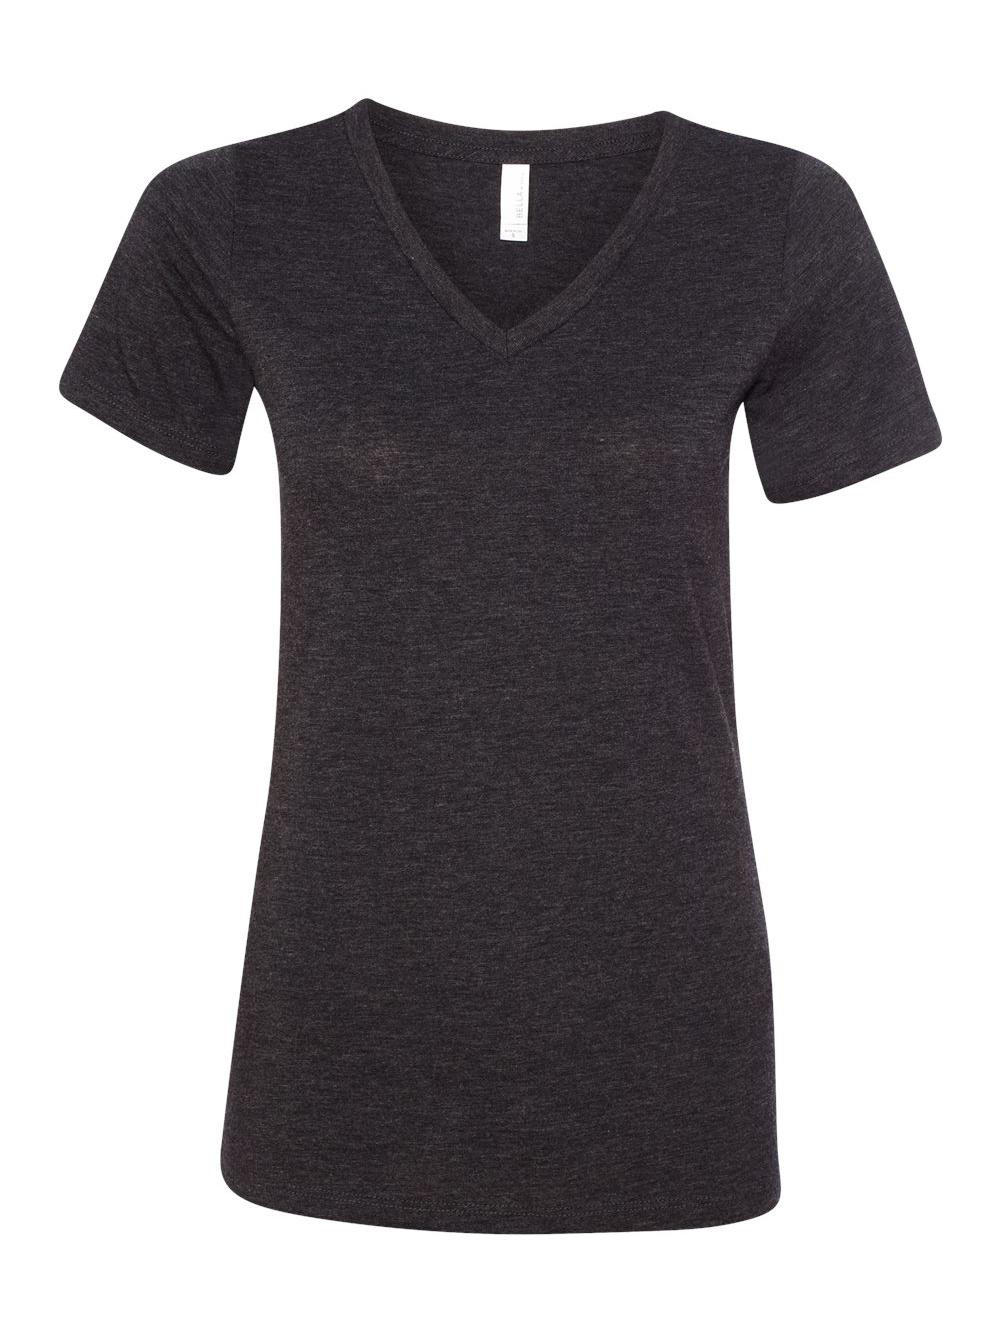 Bella-Canvas-Women-039-s-Relaxed-Short-Sleeve-Jersey-V-Neck-Tee-6405 thumbnail 15